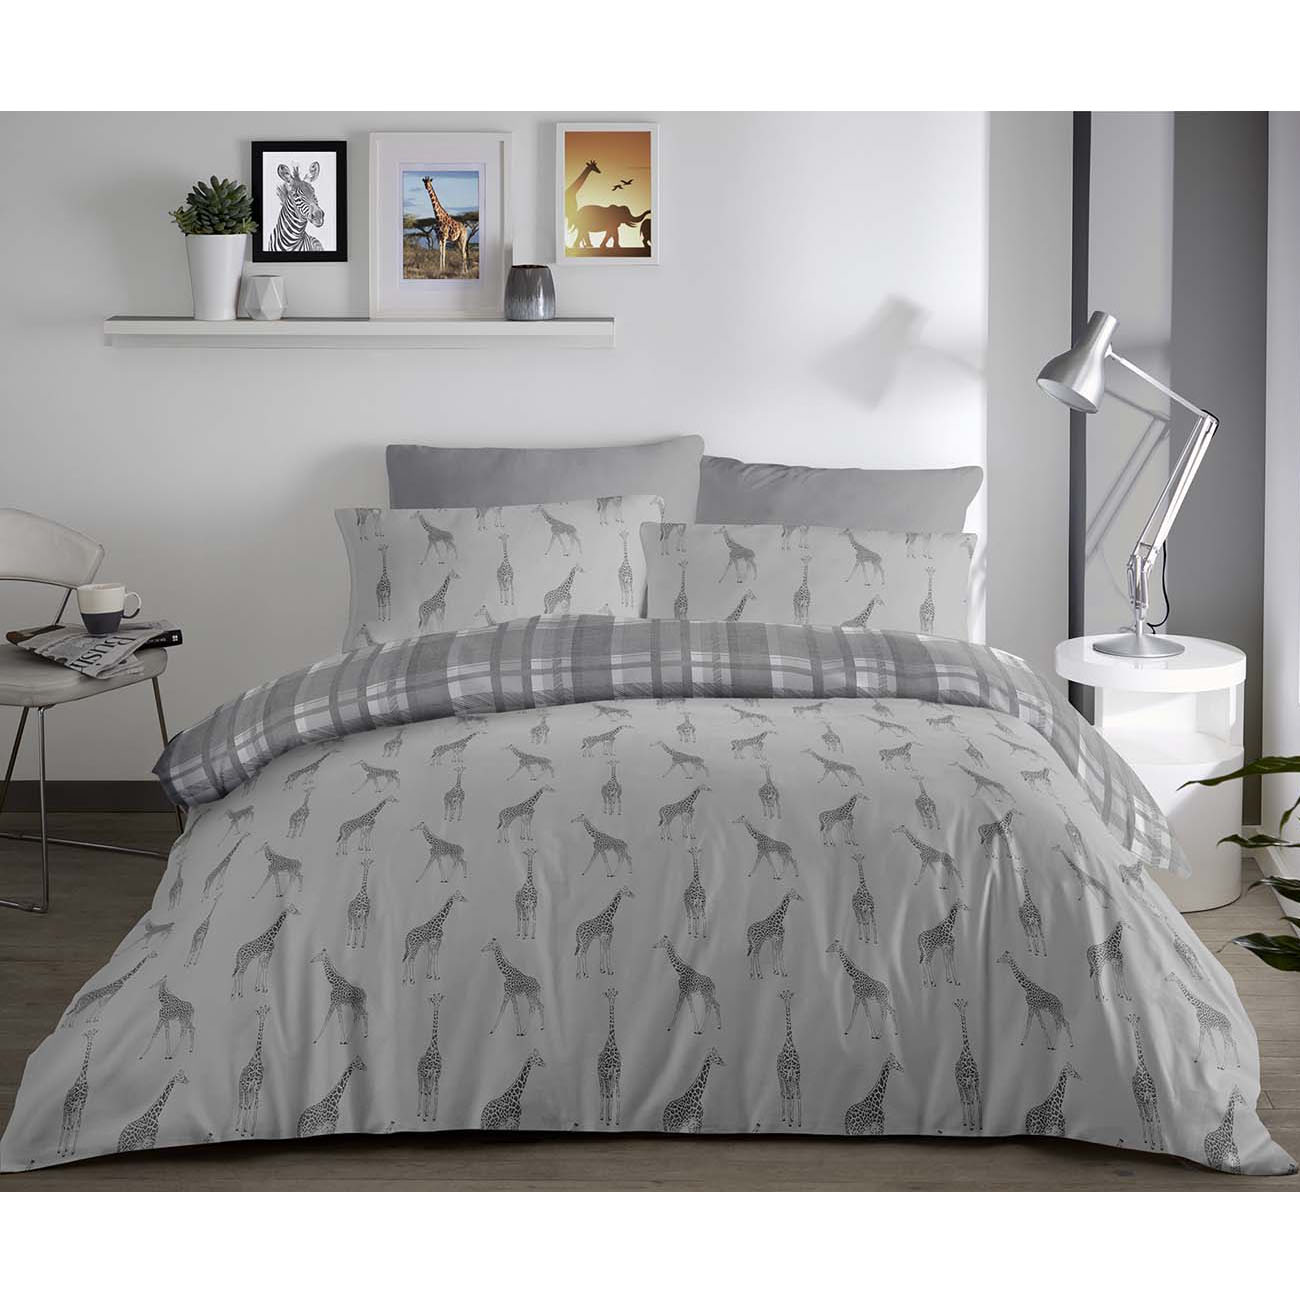 Single Duvet Set